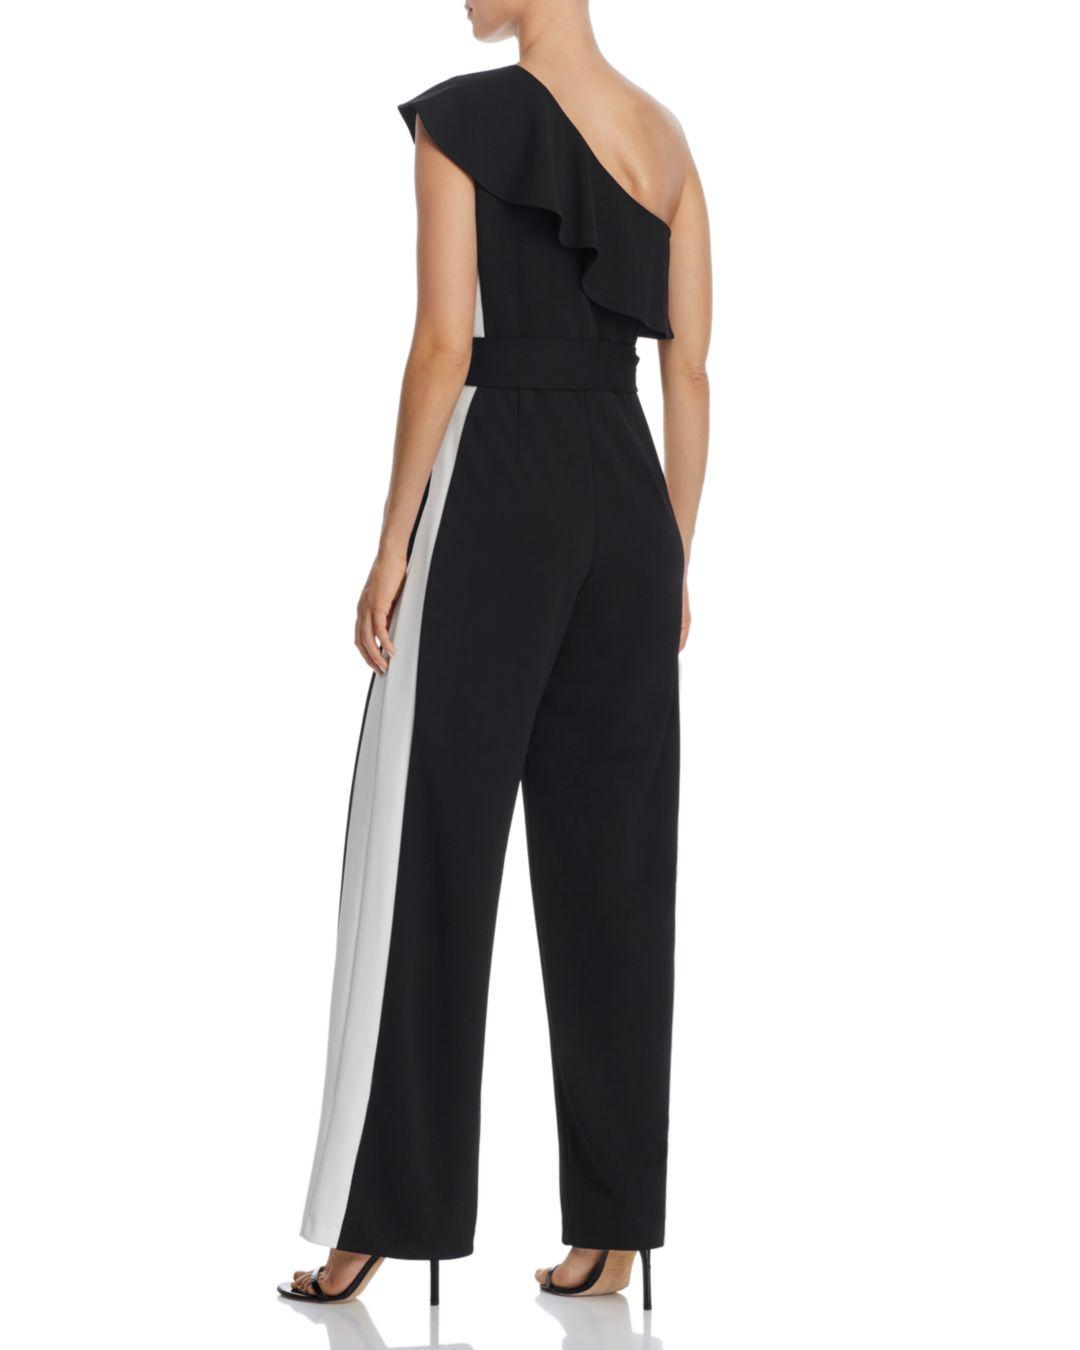 290e952683d Lyst - Adrianna Papell One-shoulder Jumpsuit in Black